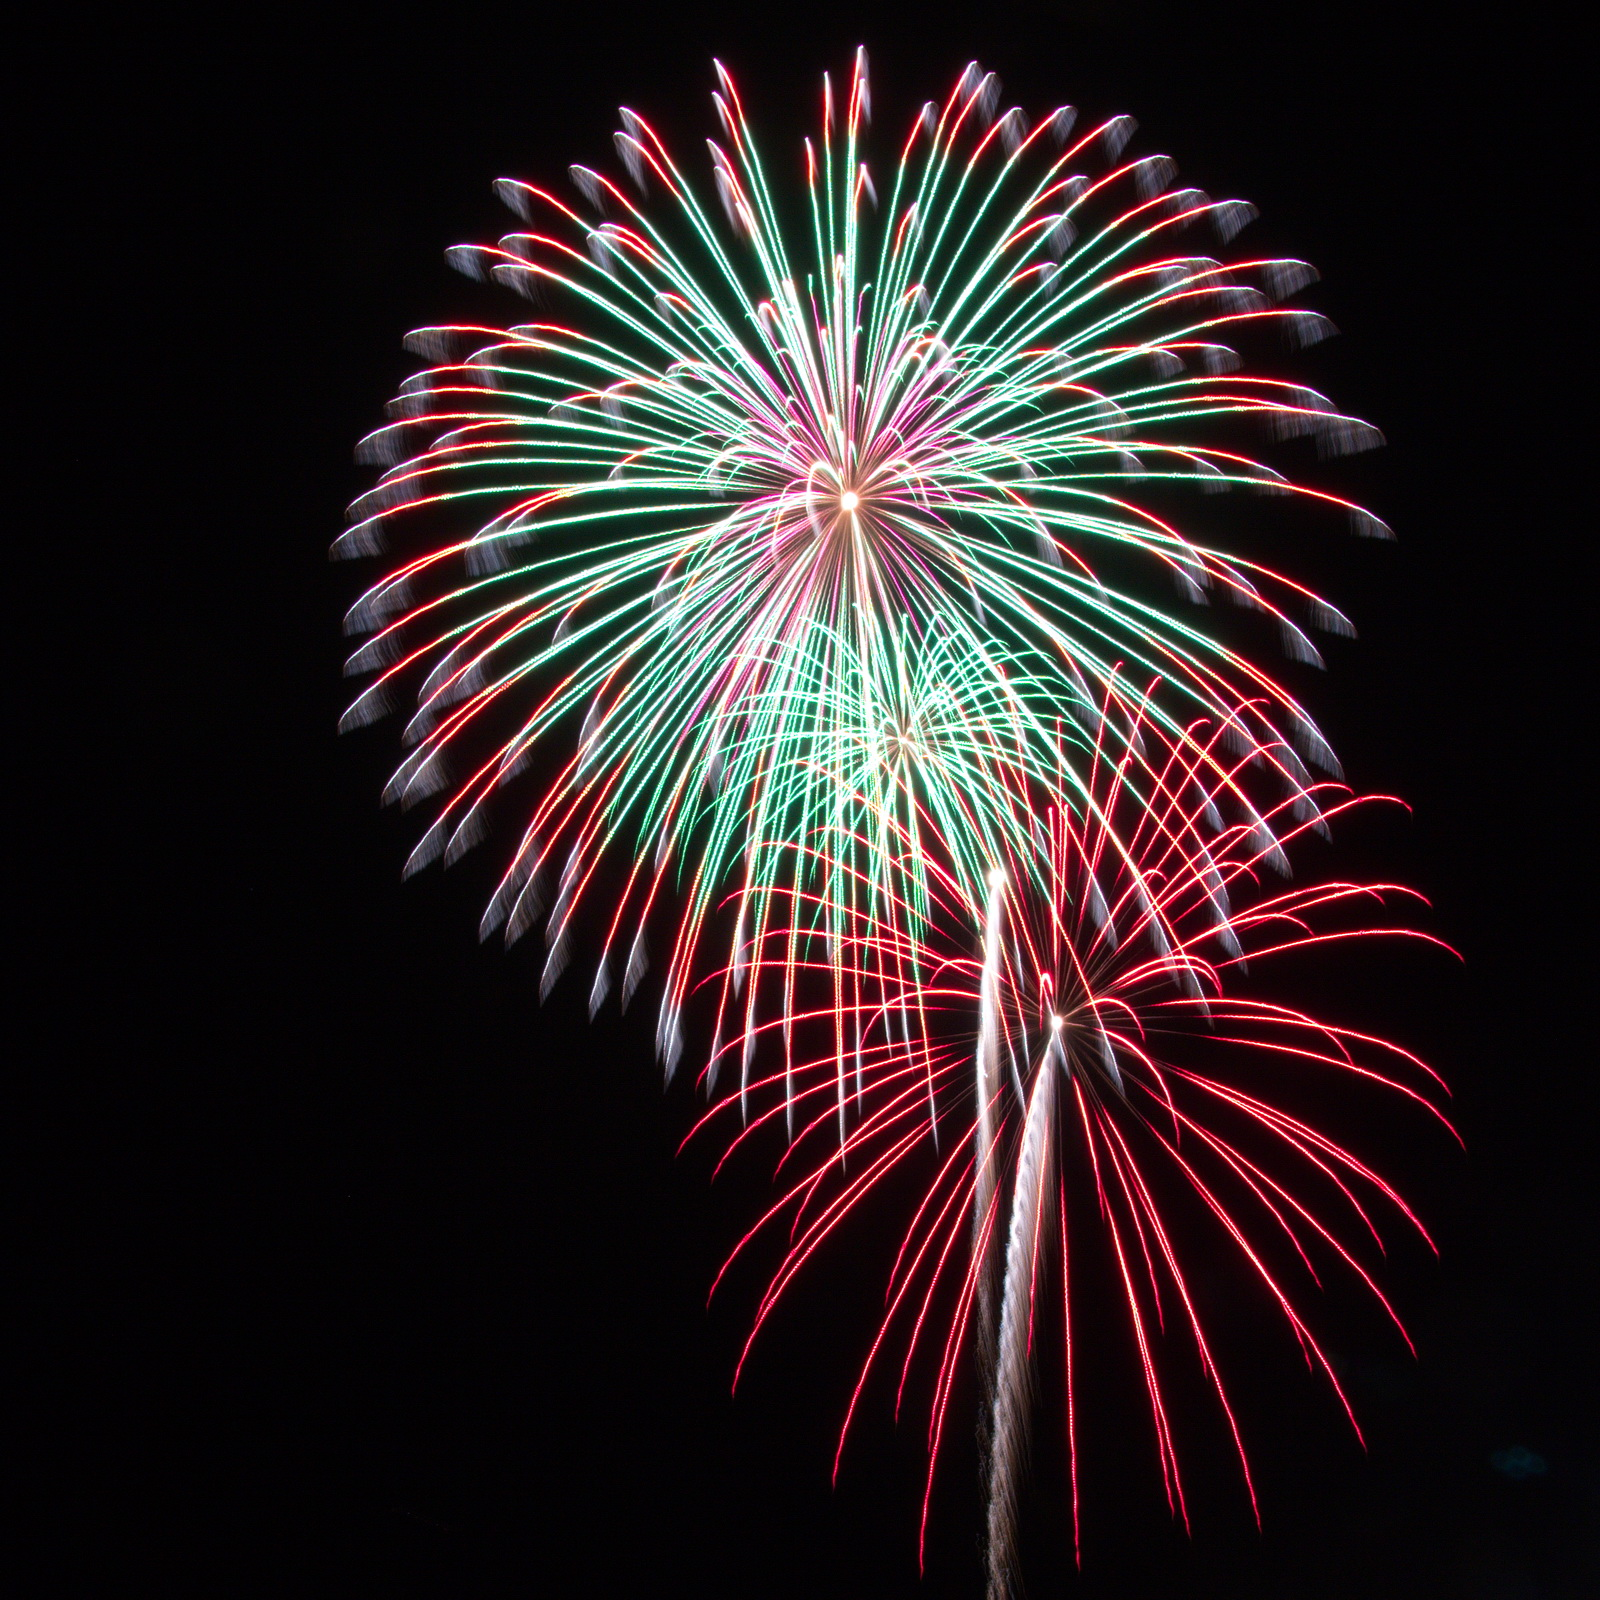 Massachusetts Fireworks: green and red bursts